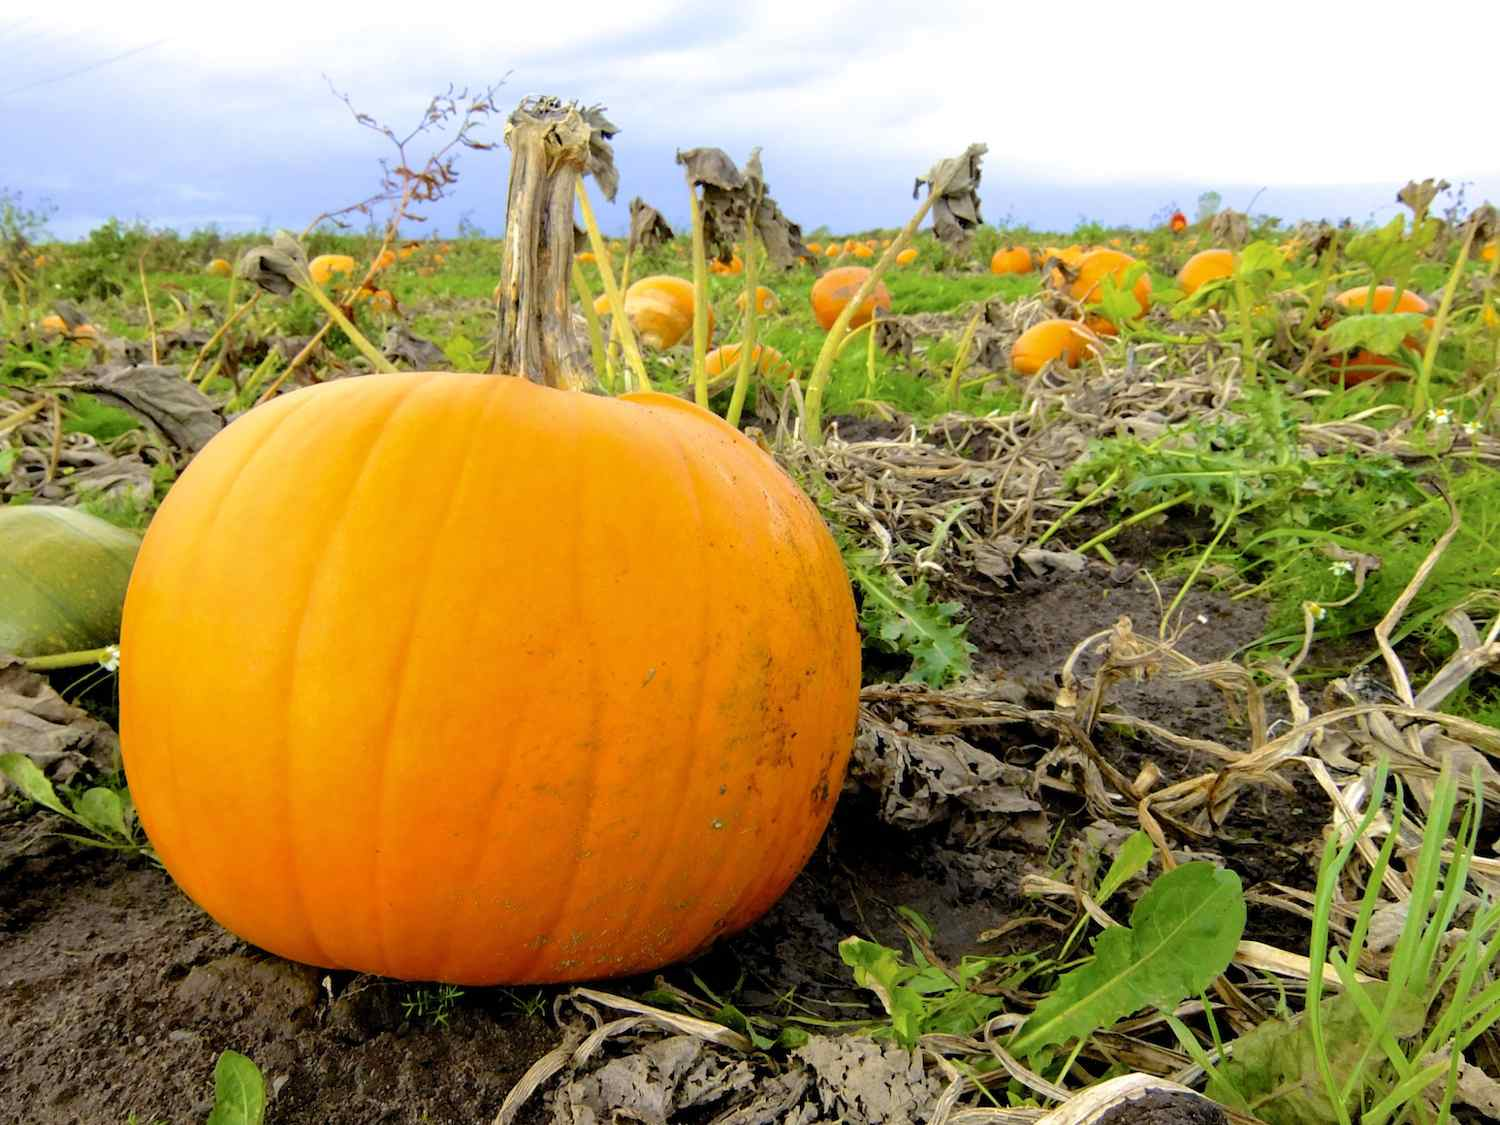 A great pumpkin for carving